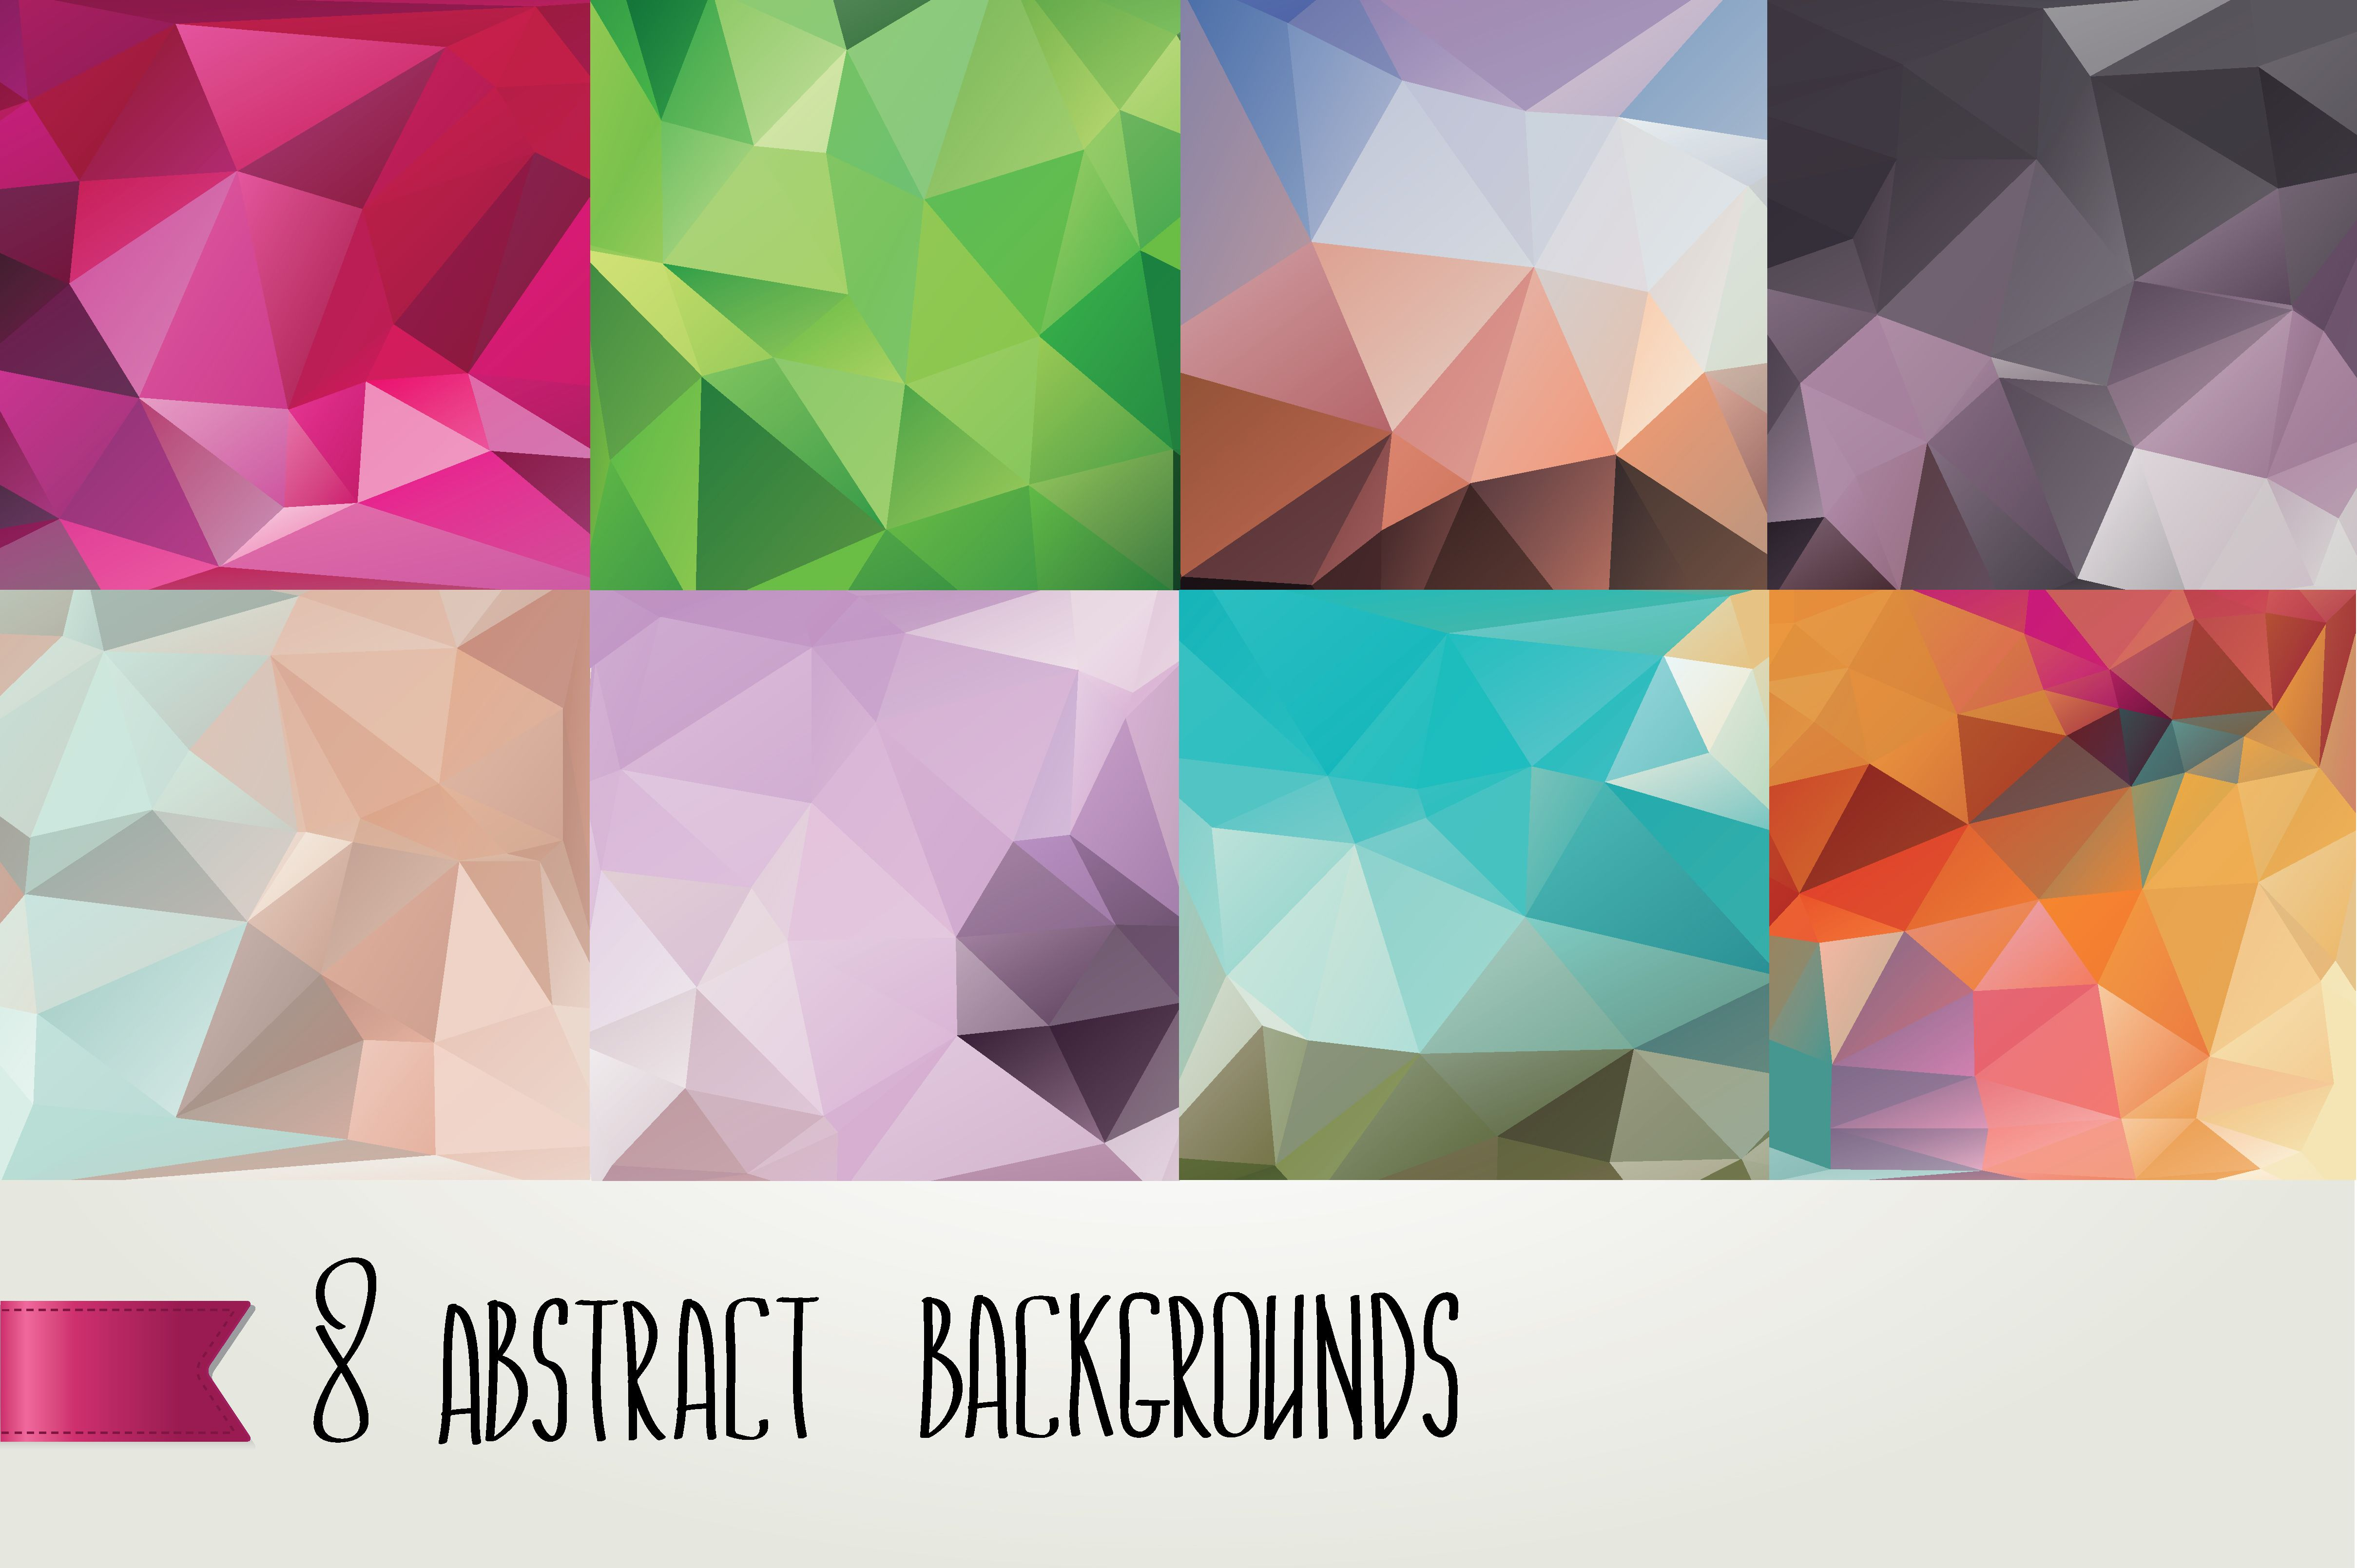 8 Abstract backgrounds by BarcelonaDesignShop